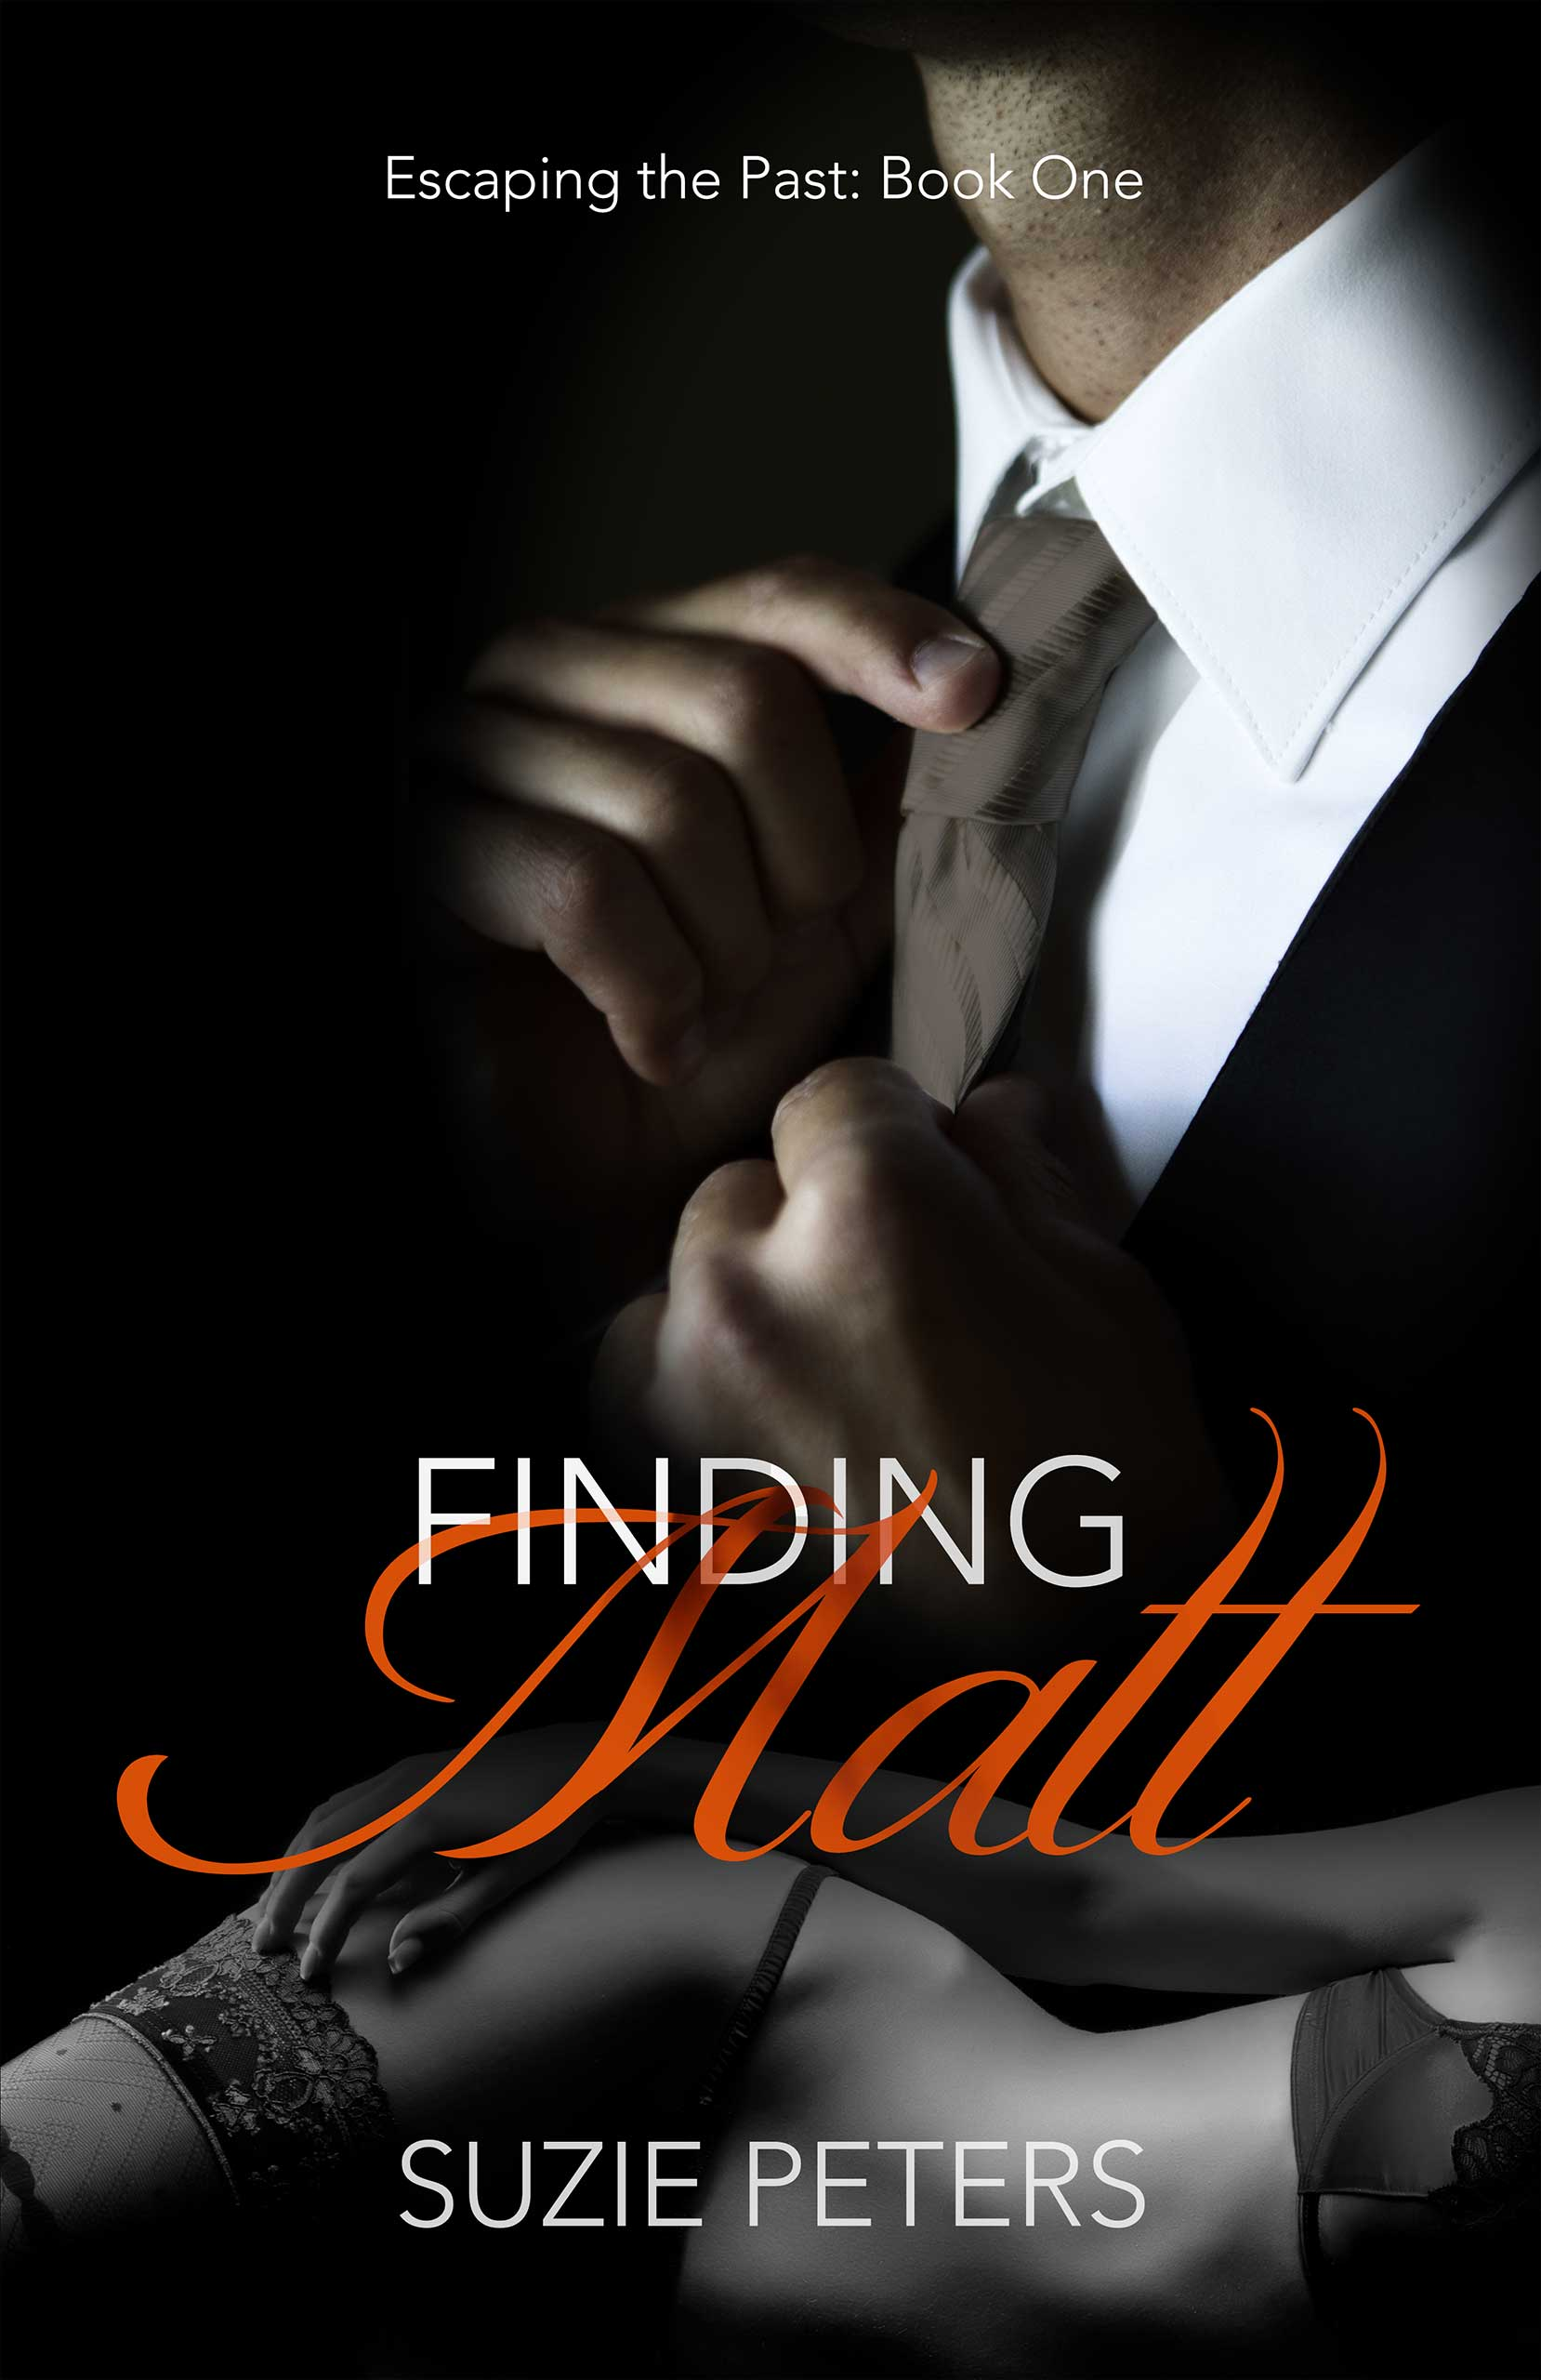 Finding Matt by Suzie Peters front cover image.